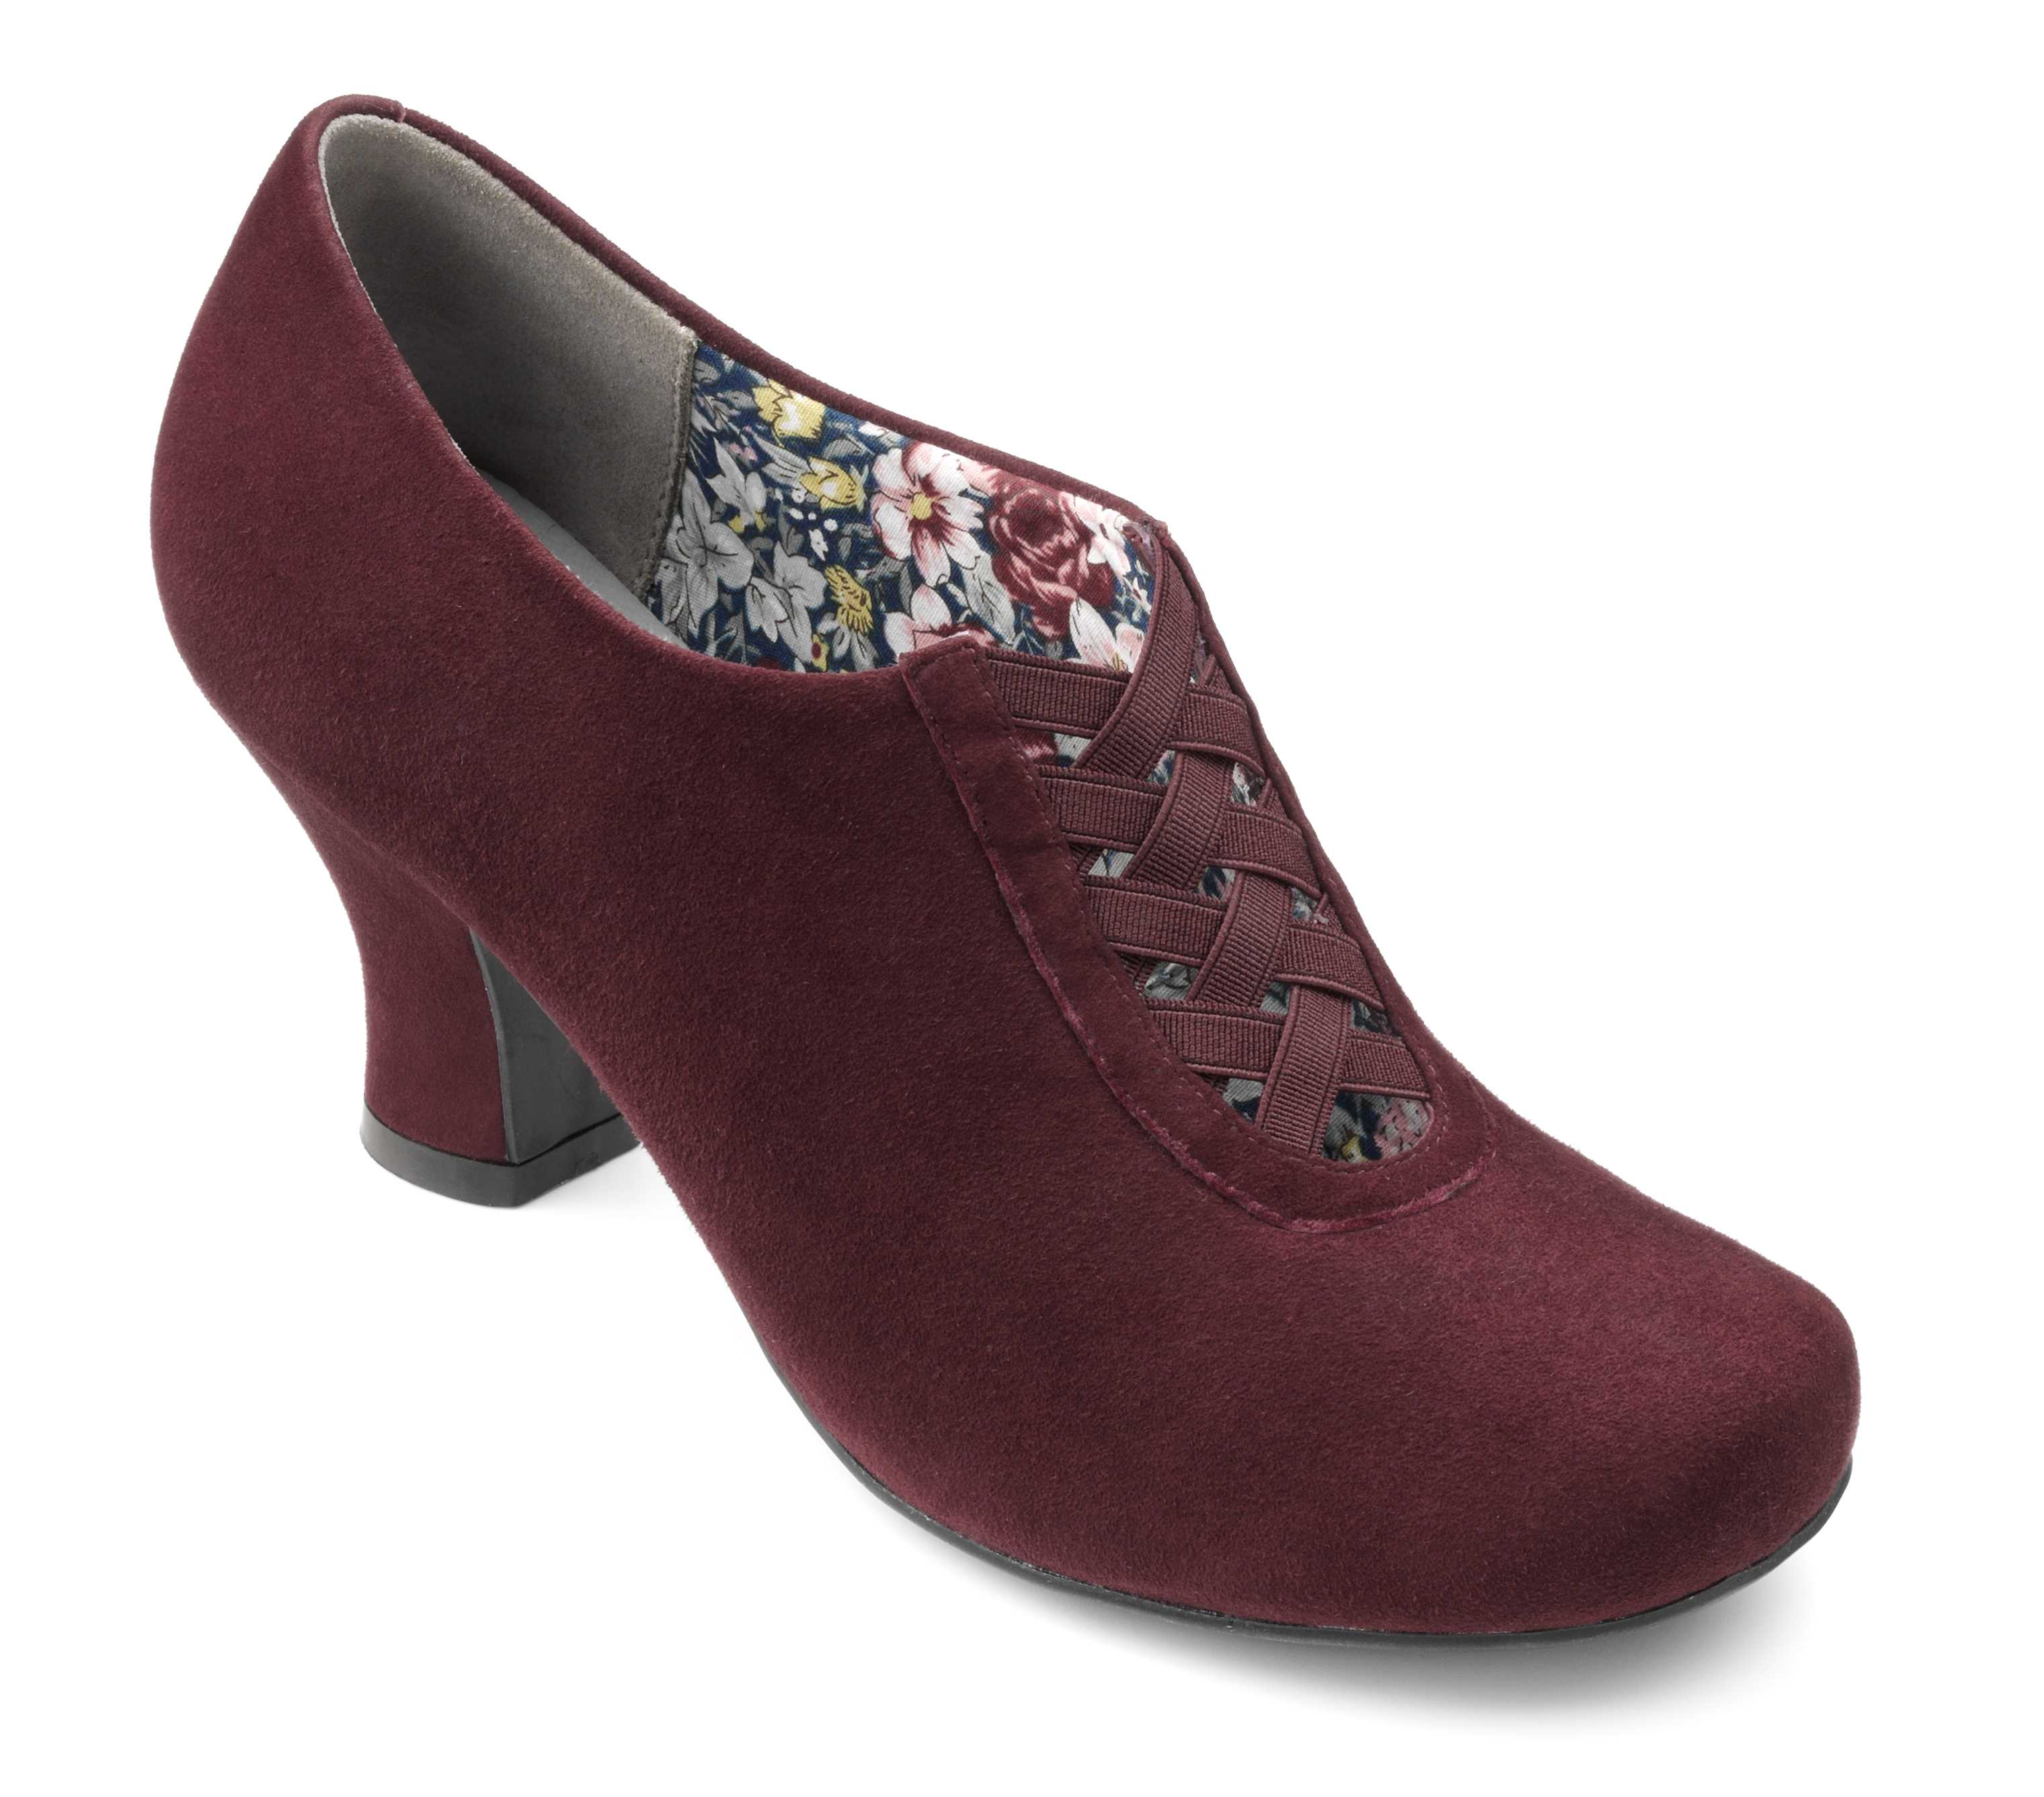 Women's slip on heel Stephanie in Maroon Suede